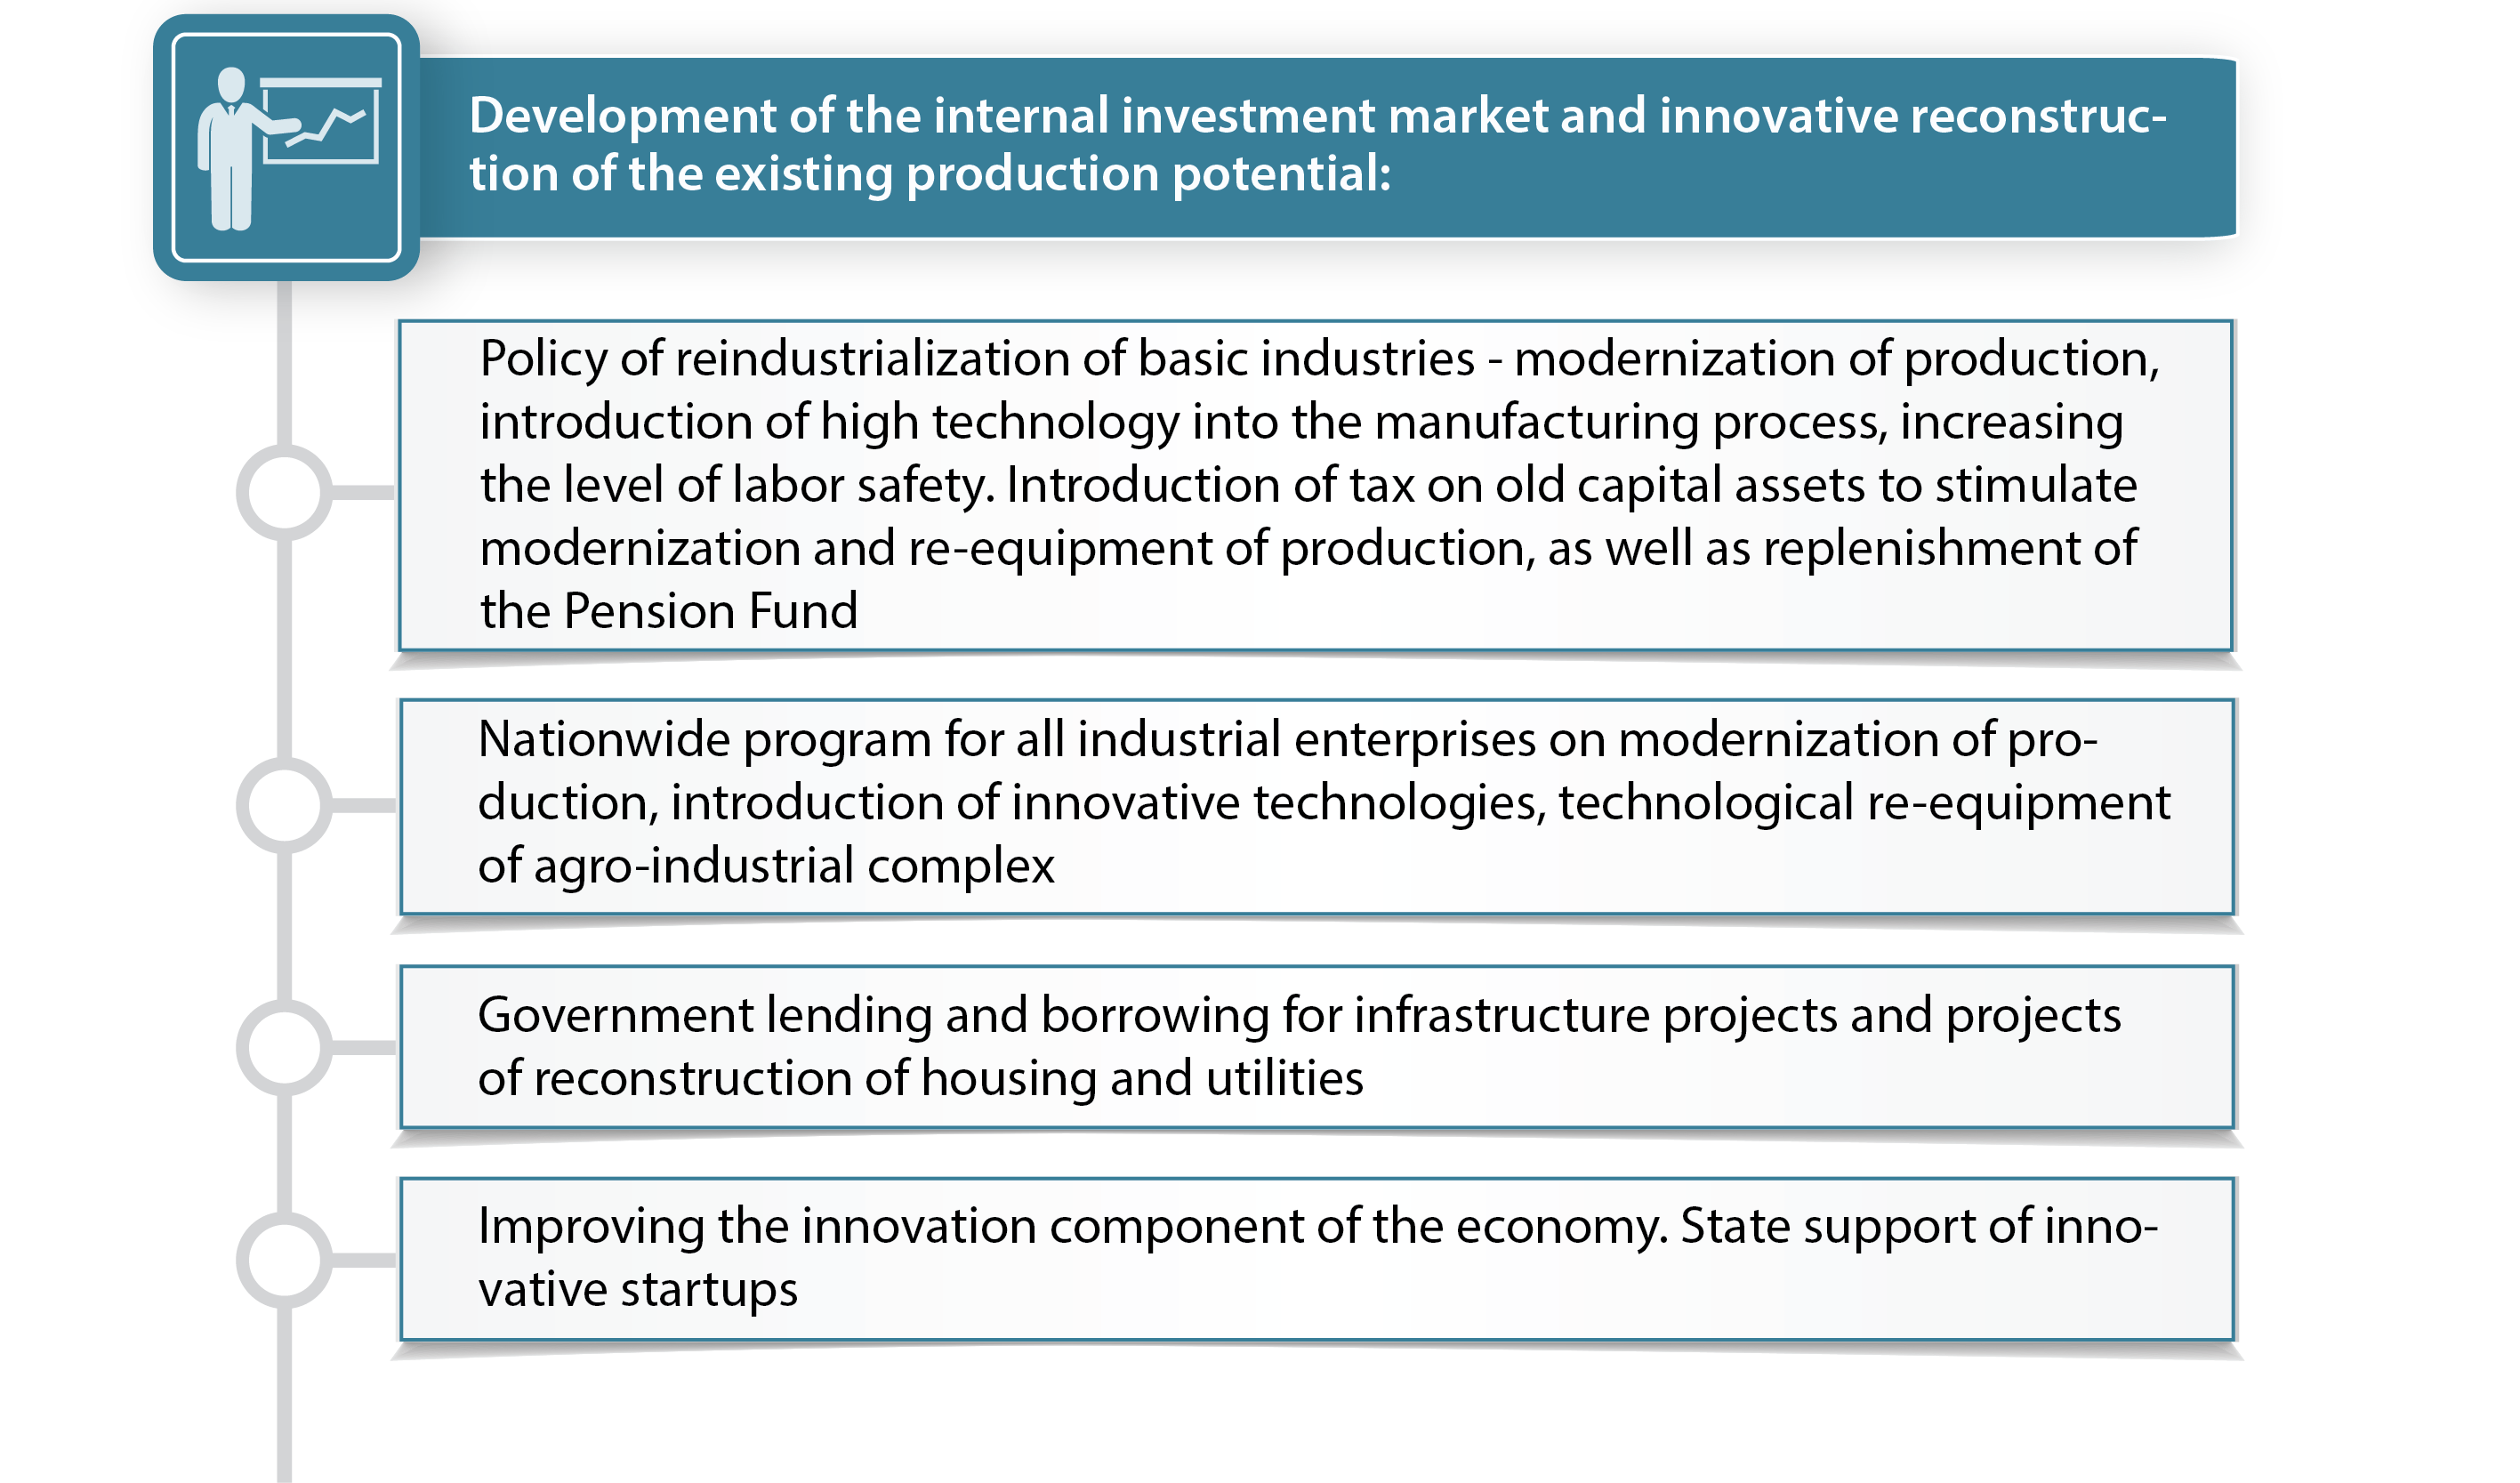 Development of the internal investment market and innovative reconstruction of the existing production potential